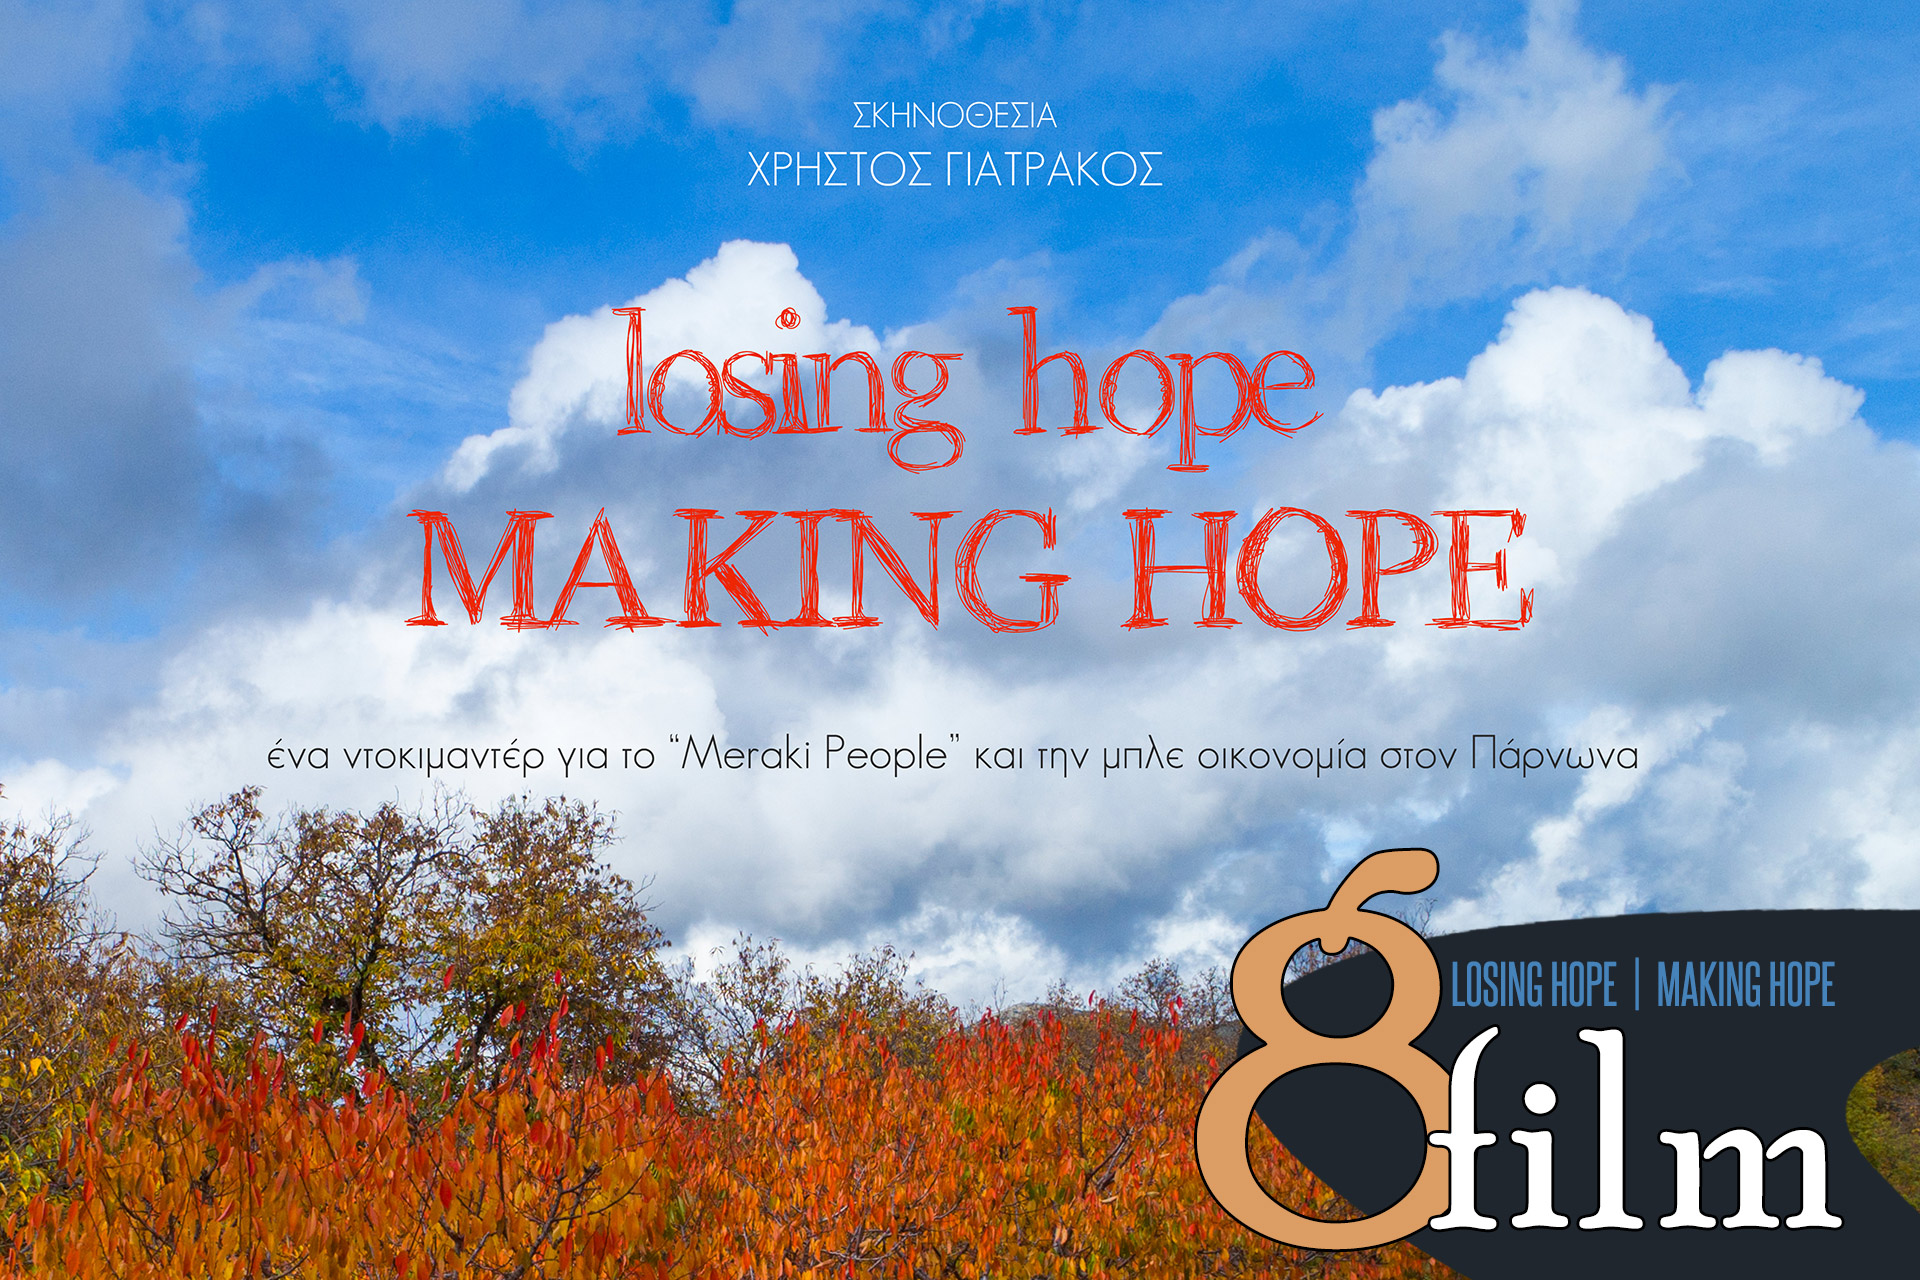 8FILM-LOSING-HOPE-MAKING-HOPE